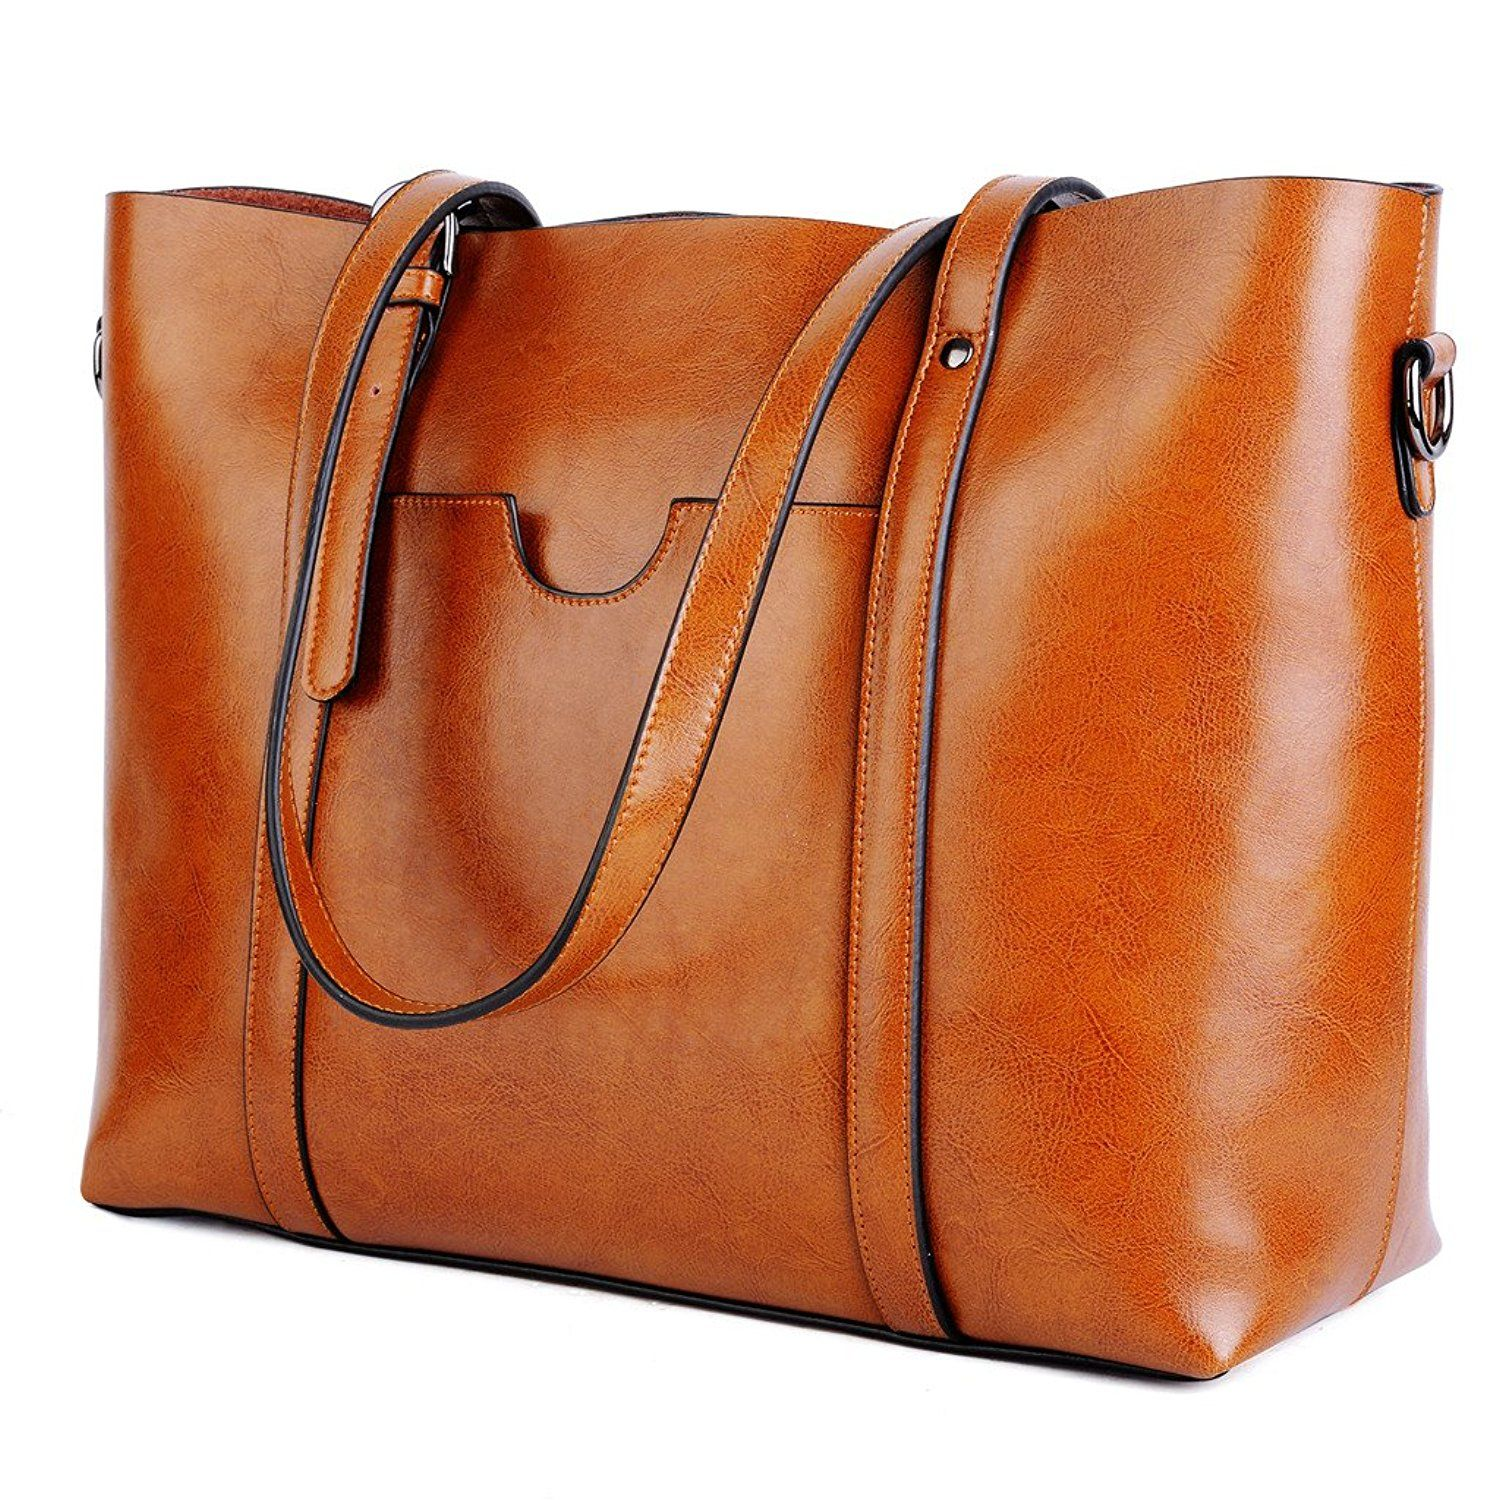 7fbdbd2aa0 Amazon.com  YALUXE Women s Vintage Style Soft Leather Work Tote Large Shoulder  Bag Brown